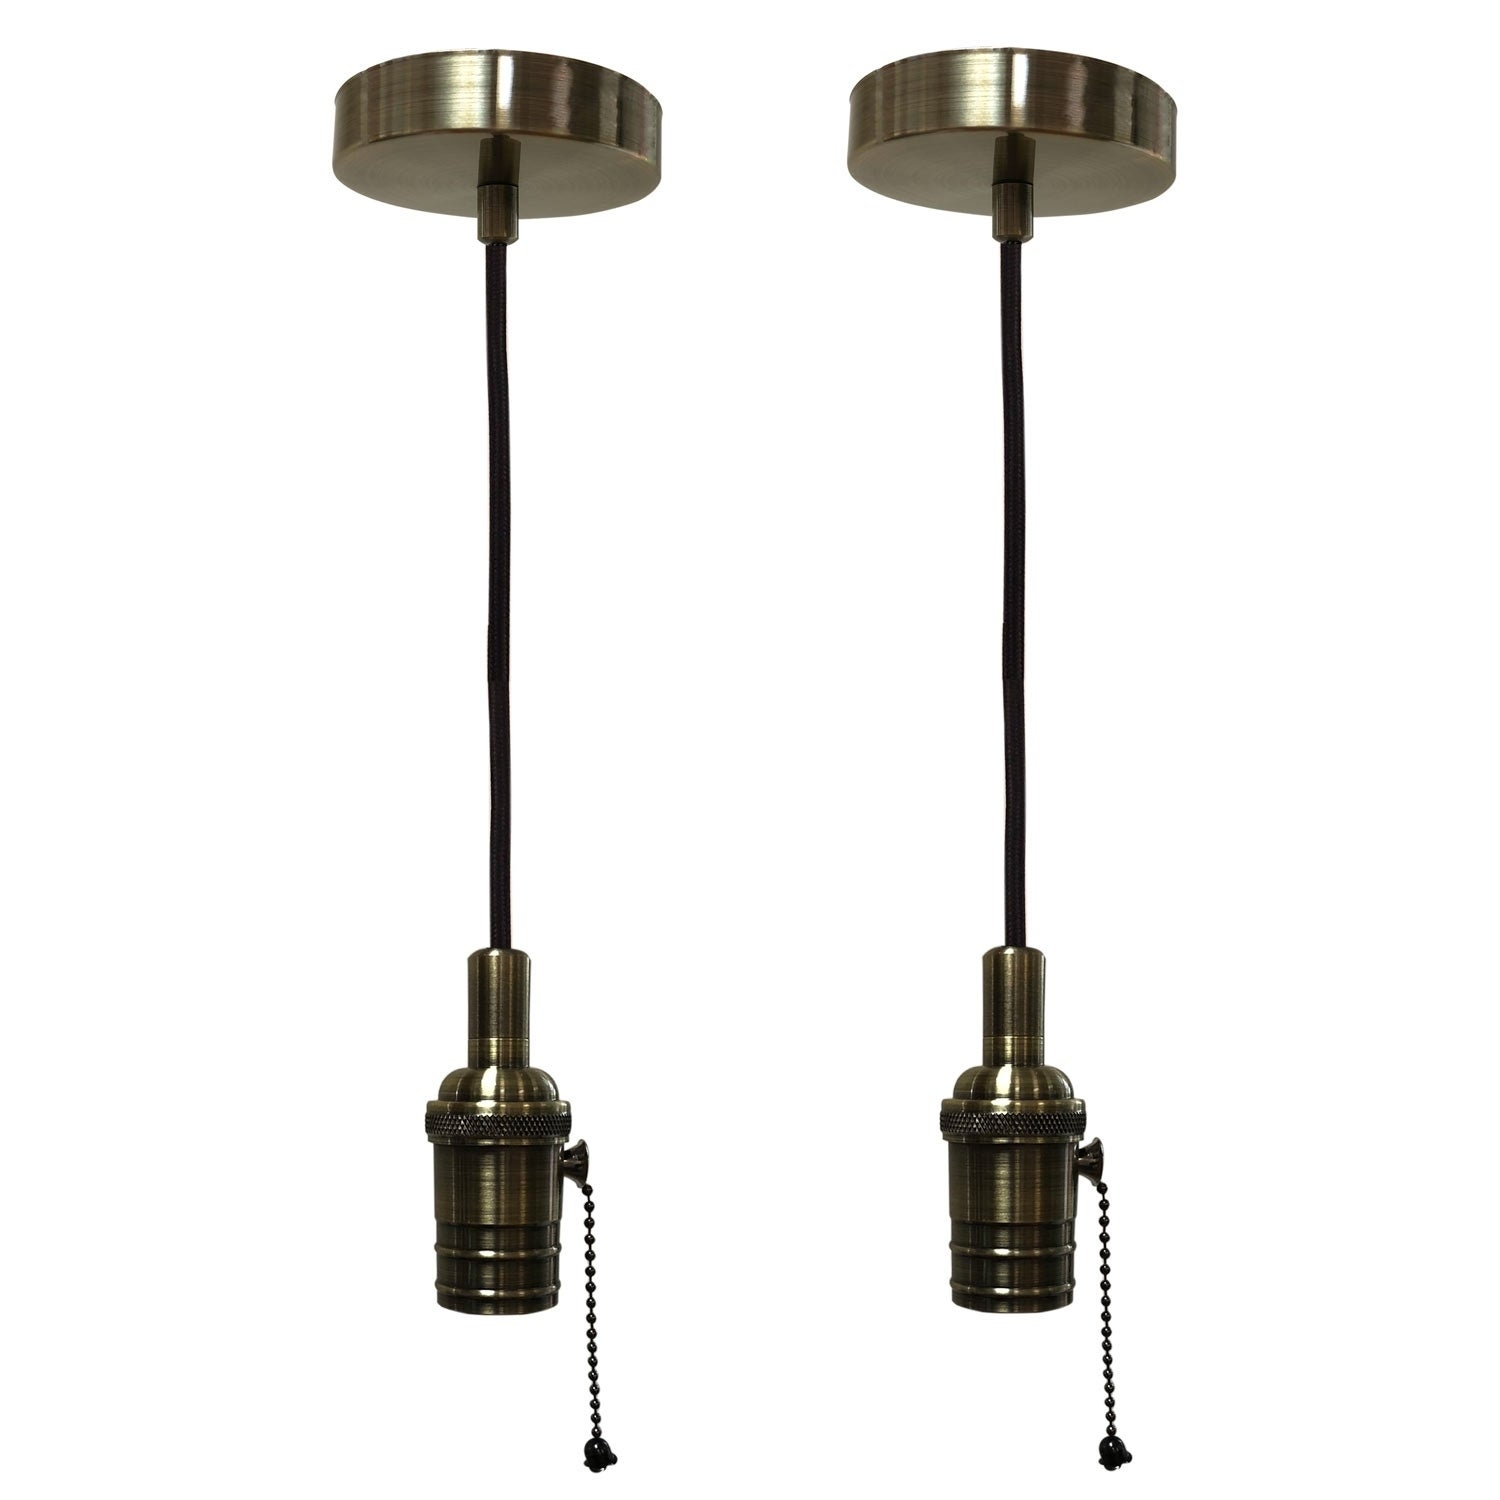 Shop Black Friday Deals On Style Antique Brass Pull Chain Pendant Light Socket And Canopy Overstock 29147127